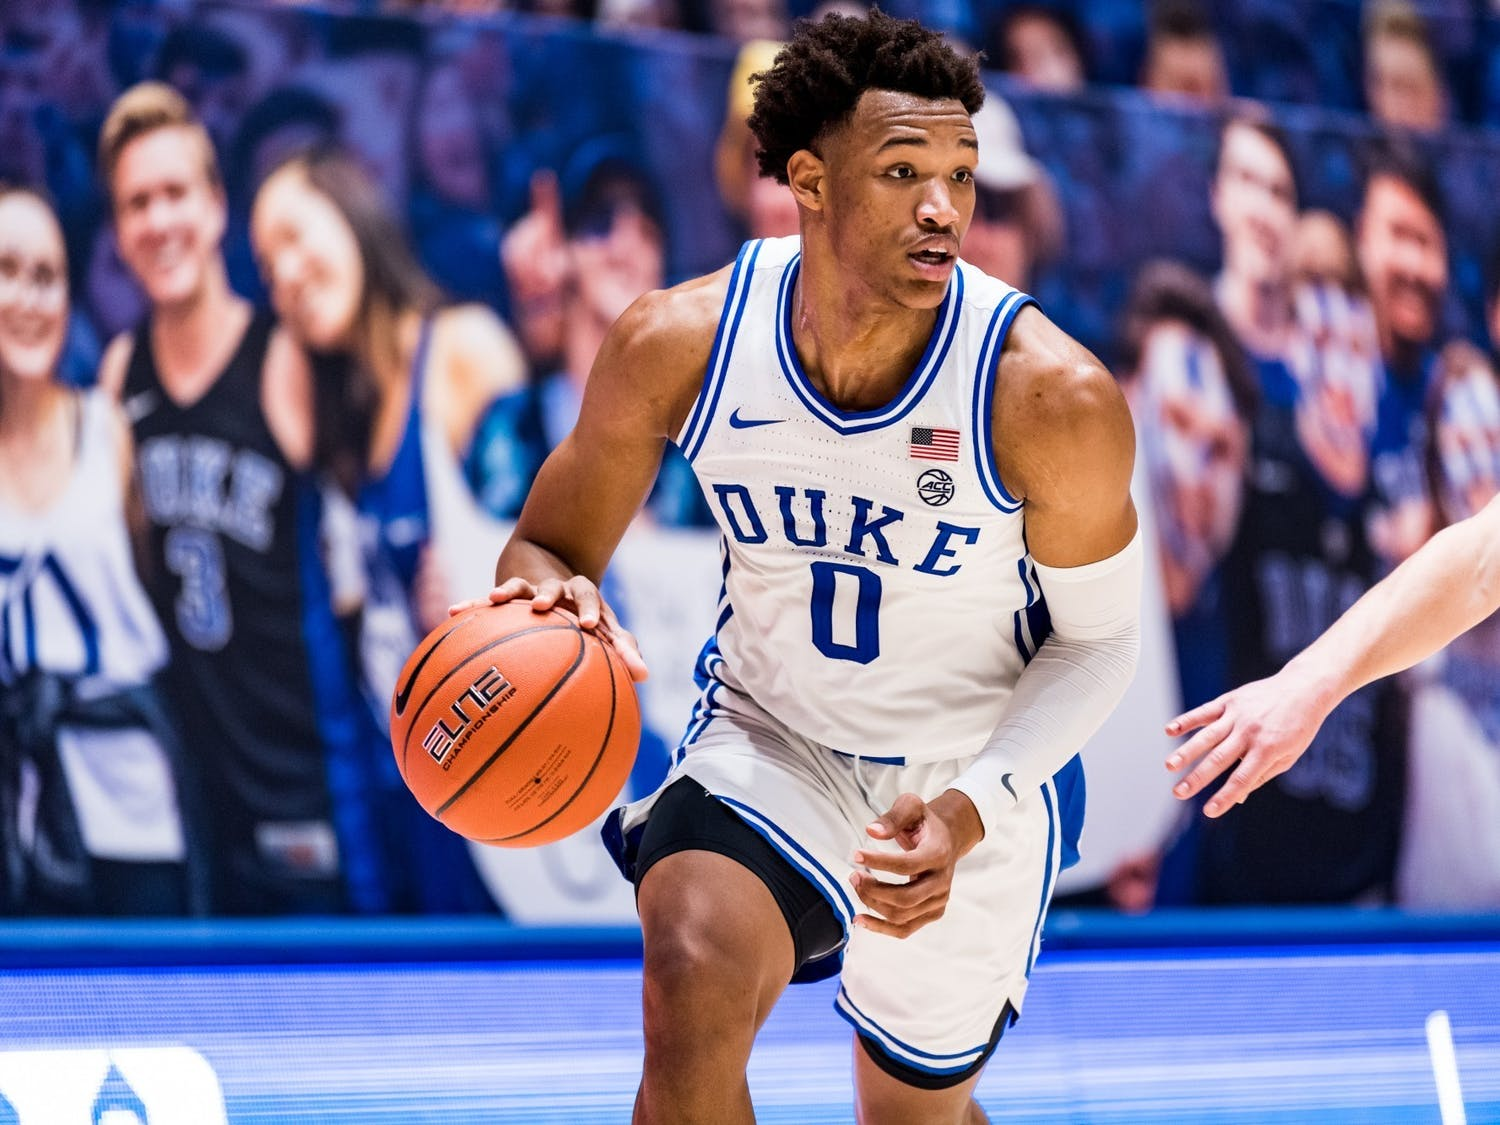 Wendell Moore Jr. will look to push the Blue Devils to a much-needed win in the second half.